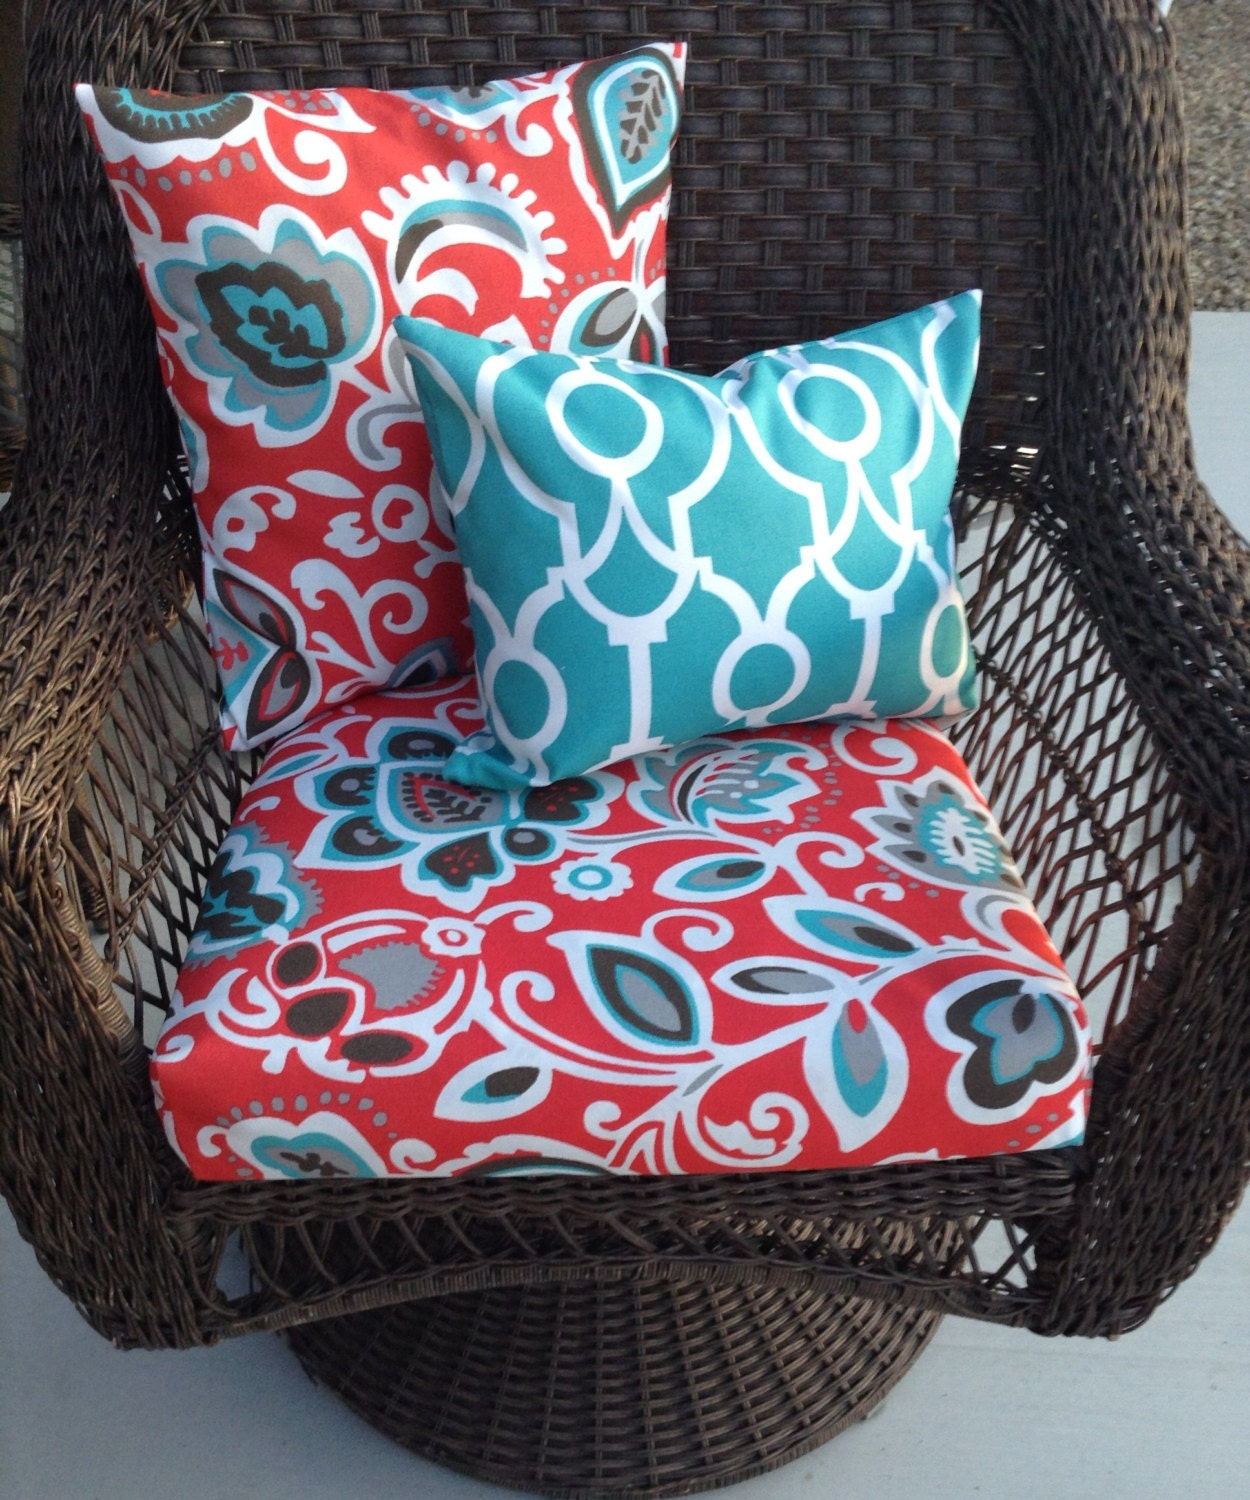 replacement outdoor furniture cushion covers outdoor pillow etsy. Black Bedroom Furniture Sets. Home Design Ideas